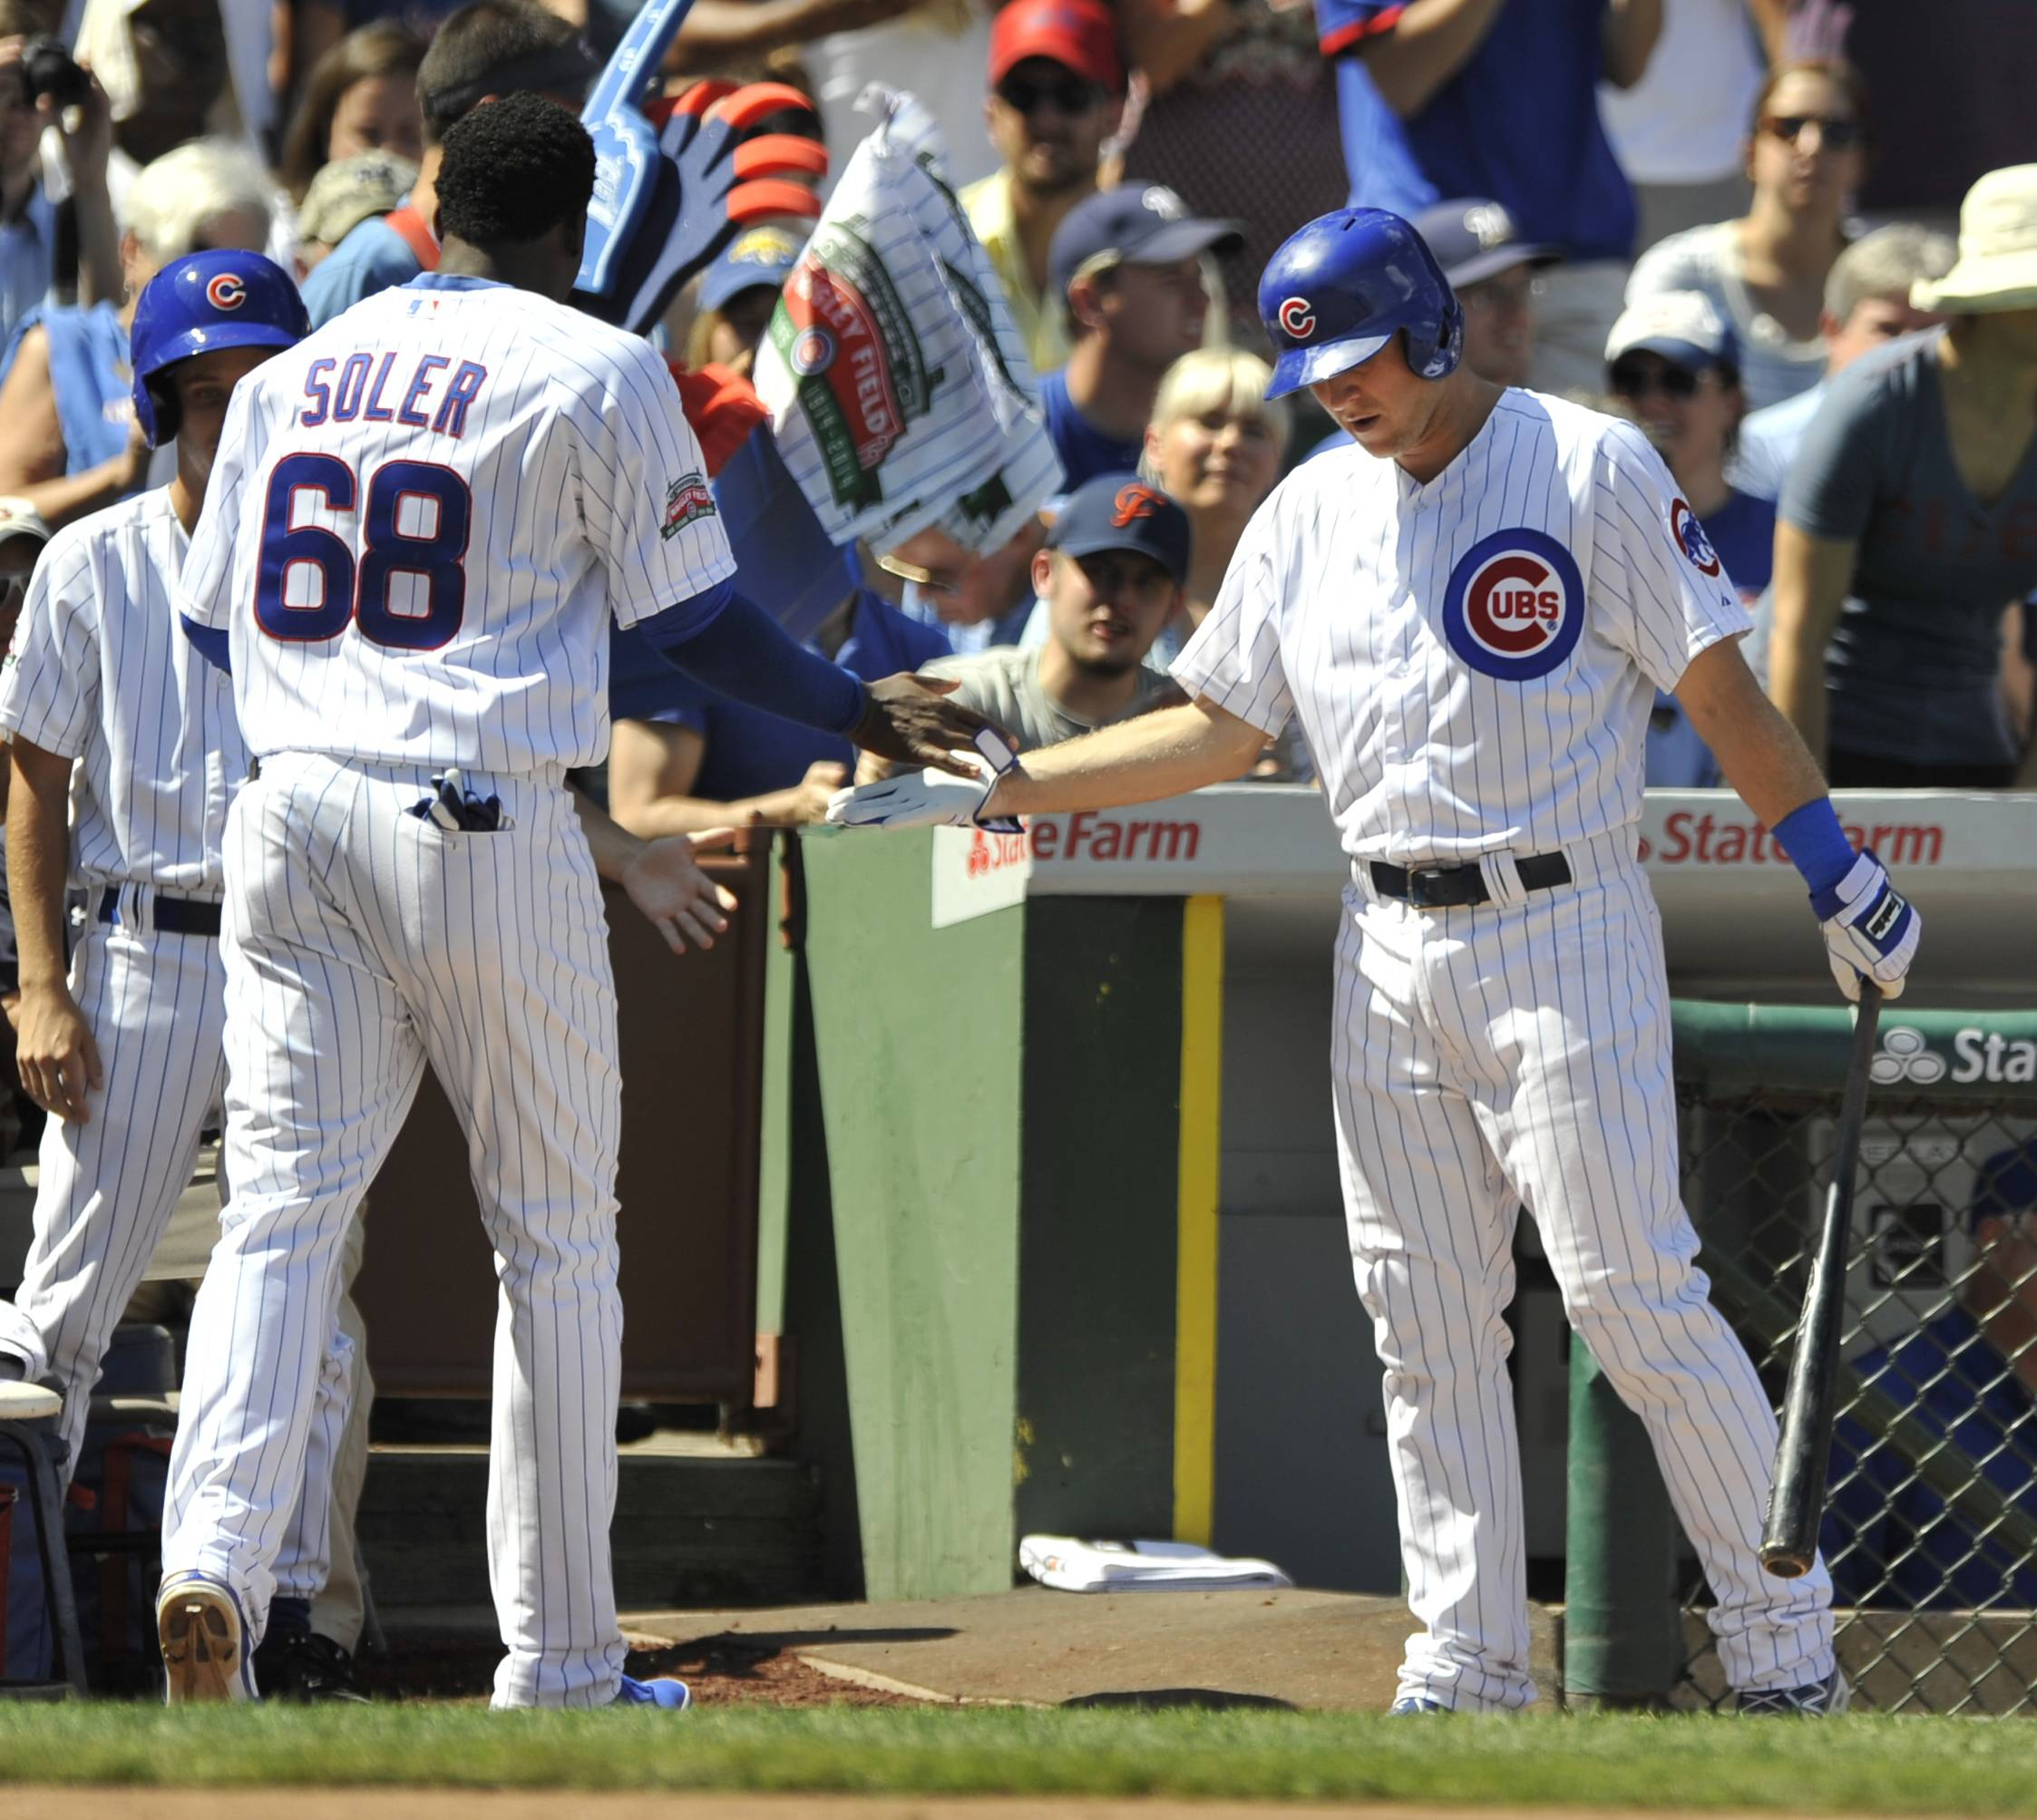 Soler's Wrigley debut big hit for Cubs